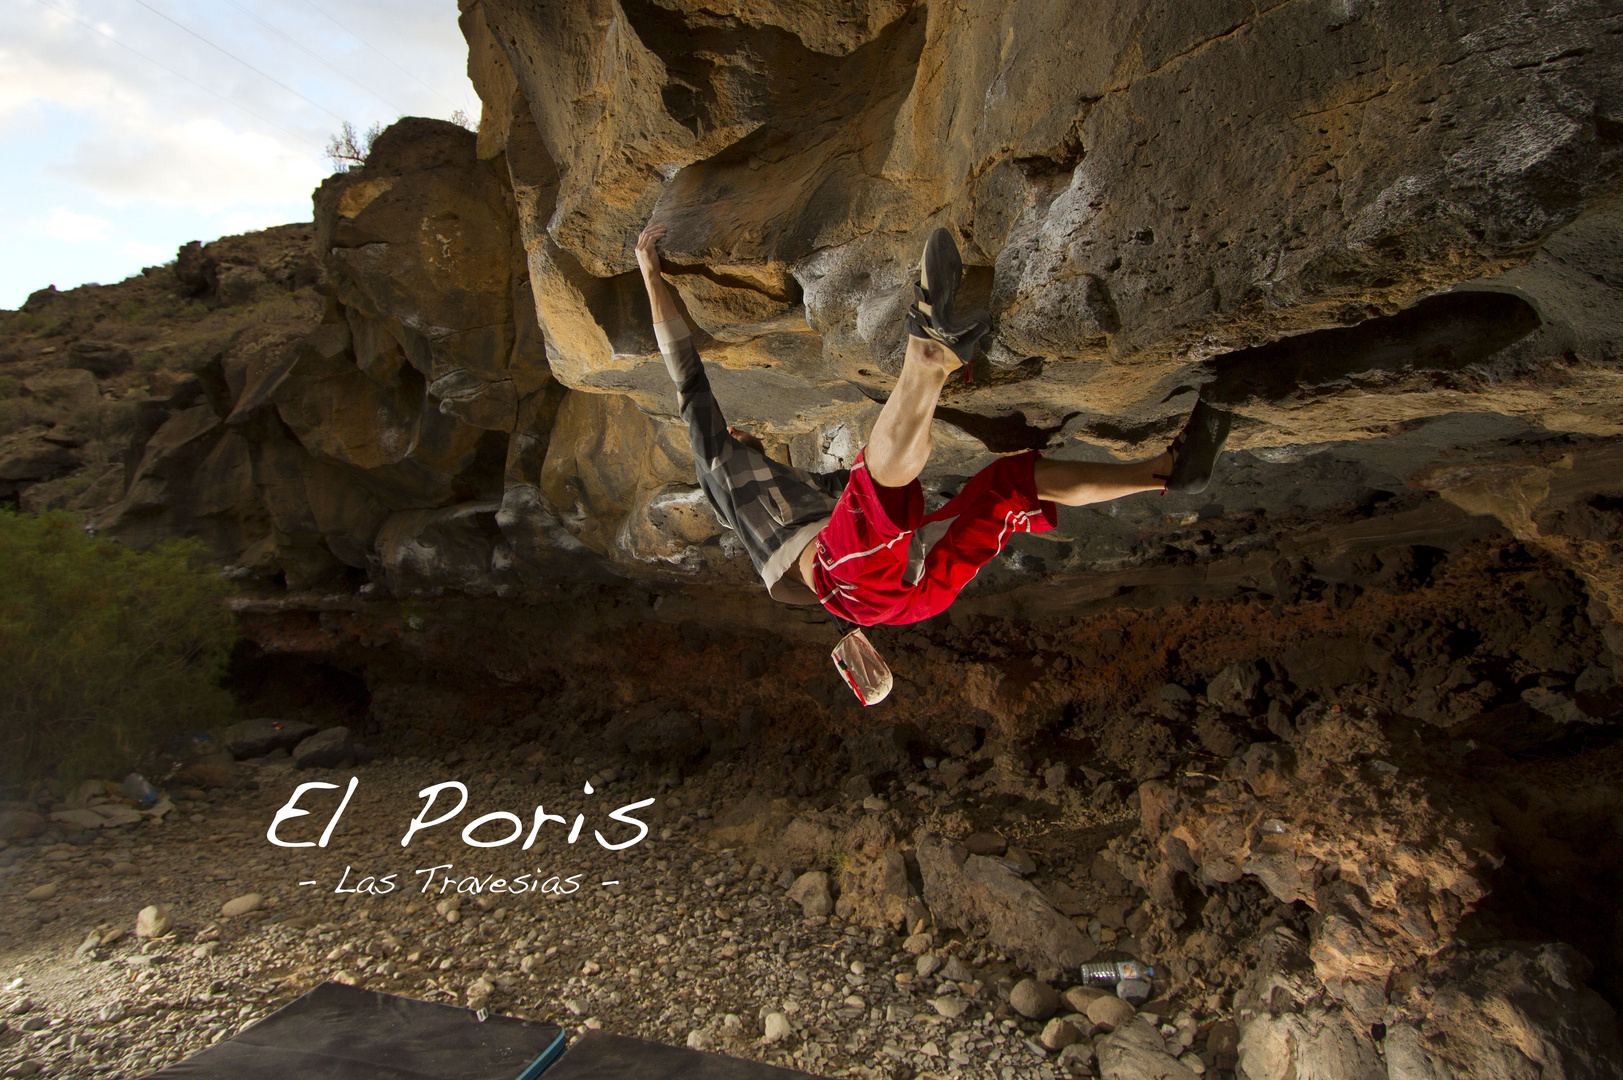 Bouldering in El Poris